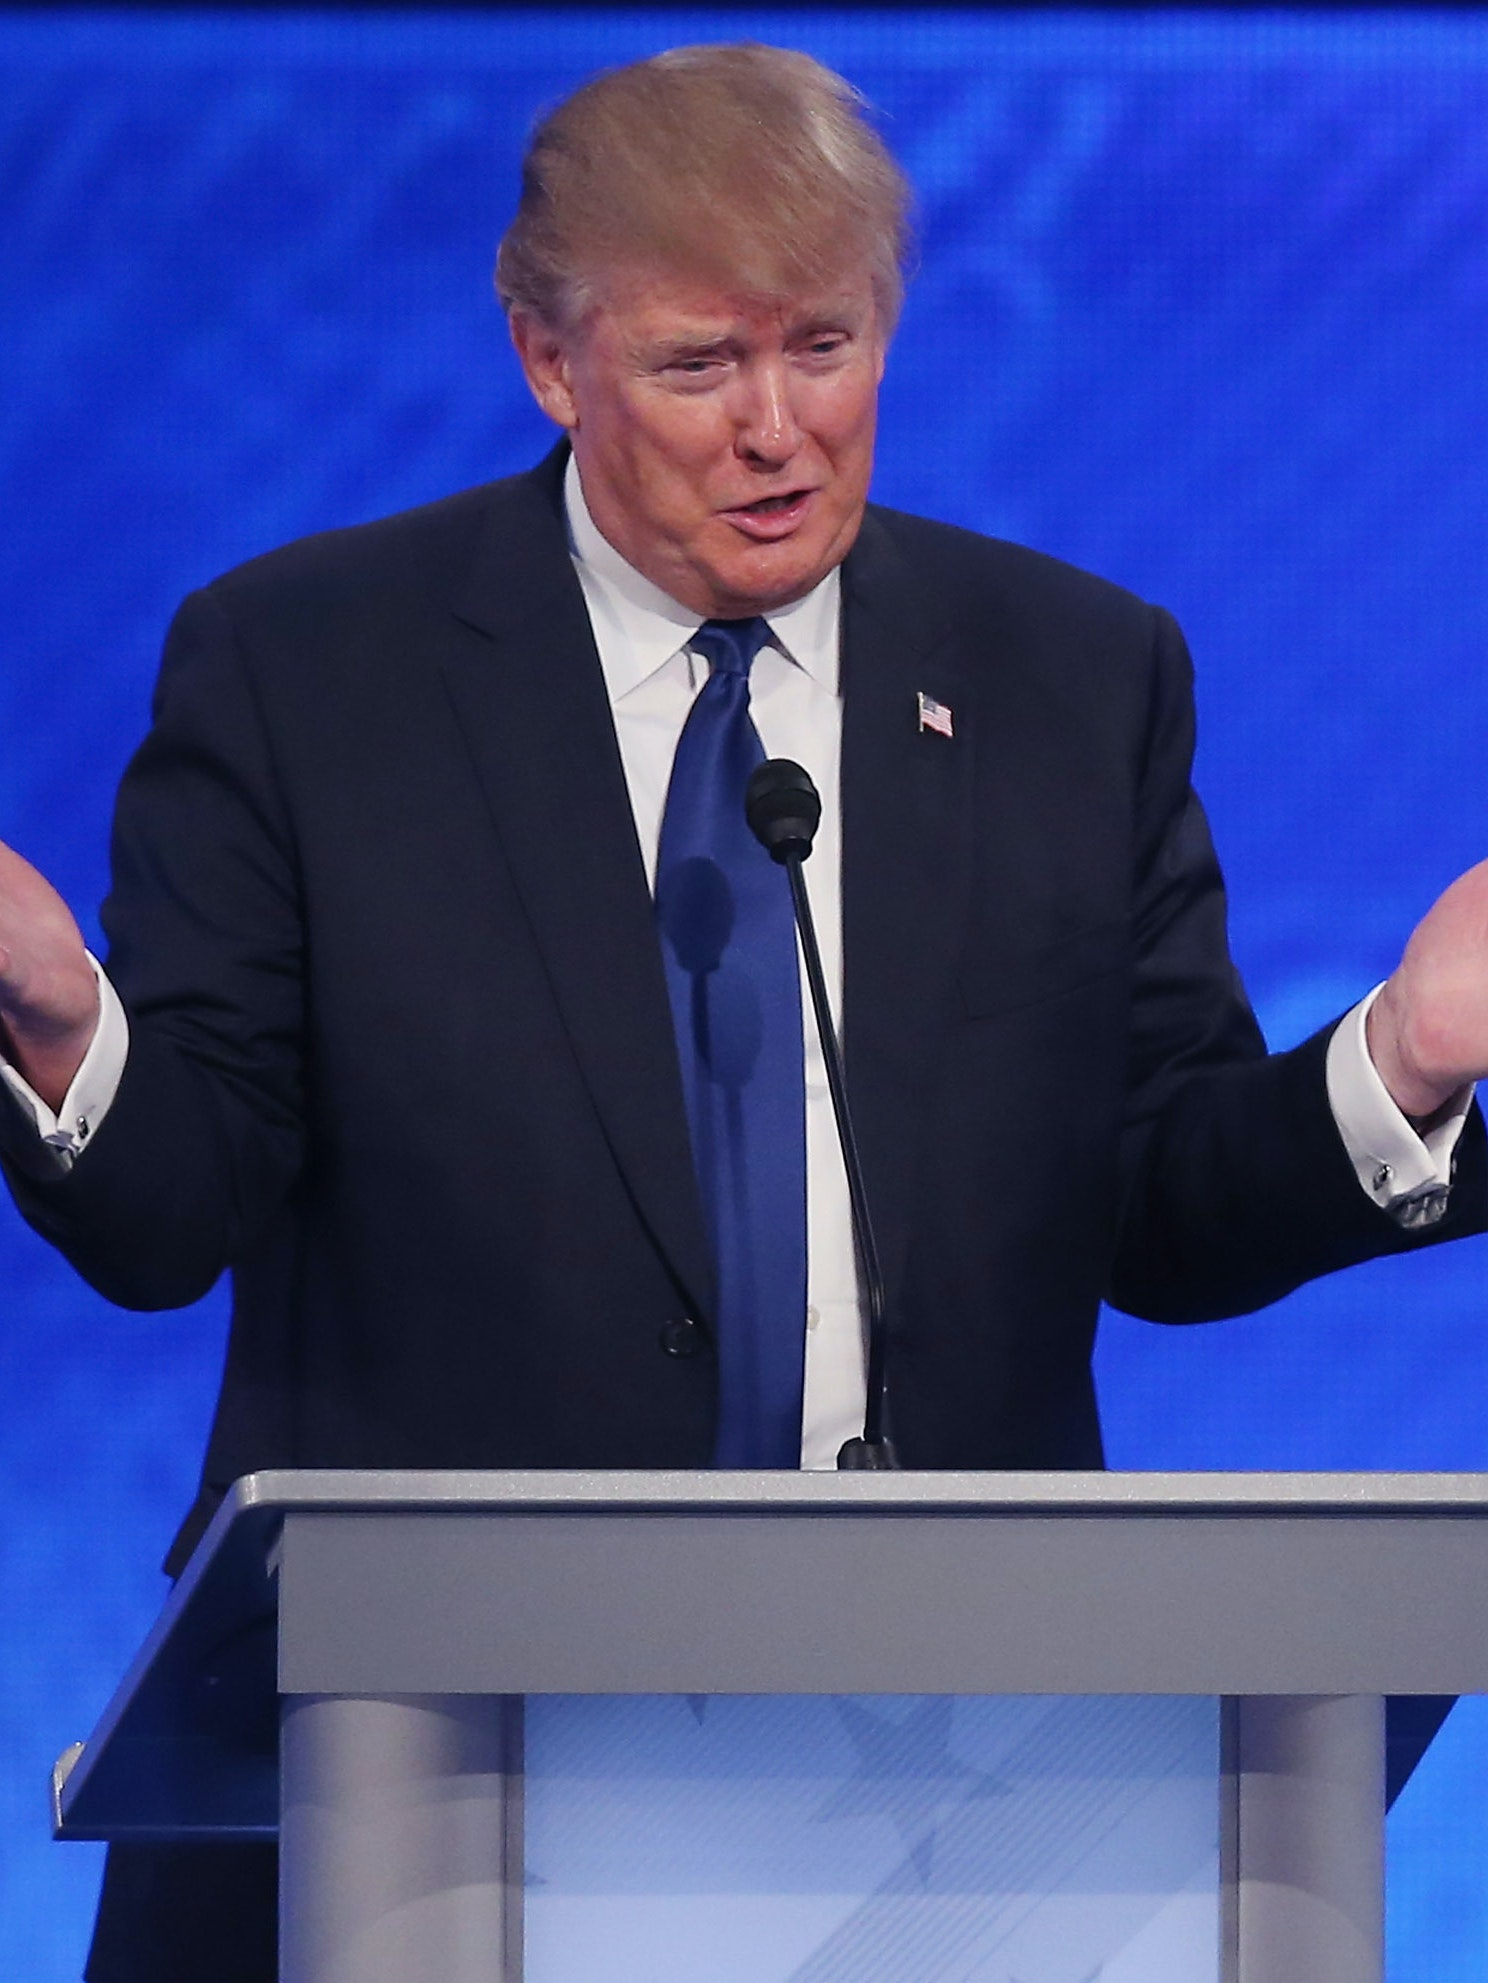 MANCHESTER, NH - FEBRUARY 06:  Republican presidential candidate Donald Trump participates in the Republican presidential debate at St. Anselm College February 6, 2016 in Manchester, New Hampshire. Sponsored by ABC News and the Independent Journal Review, this is the final televised debate before voters go to the polls for the New Hampshire primary on February 9.  (Photo by Joe Raedle/Getty Images)